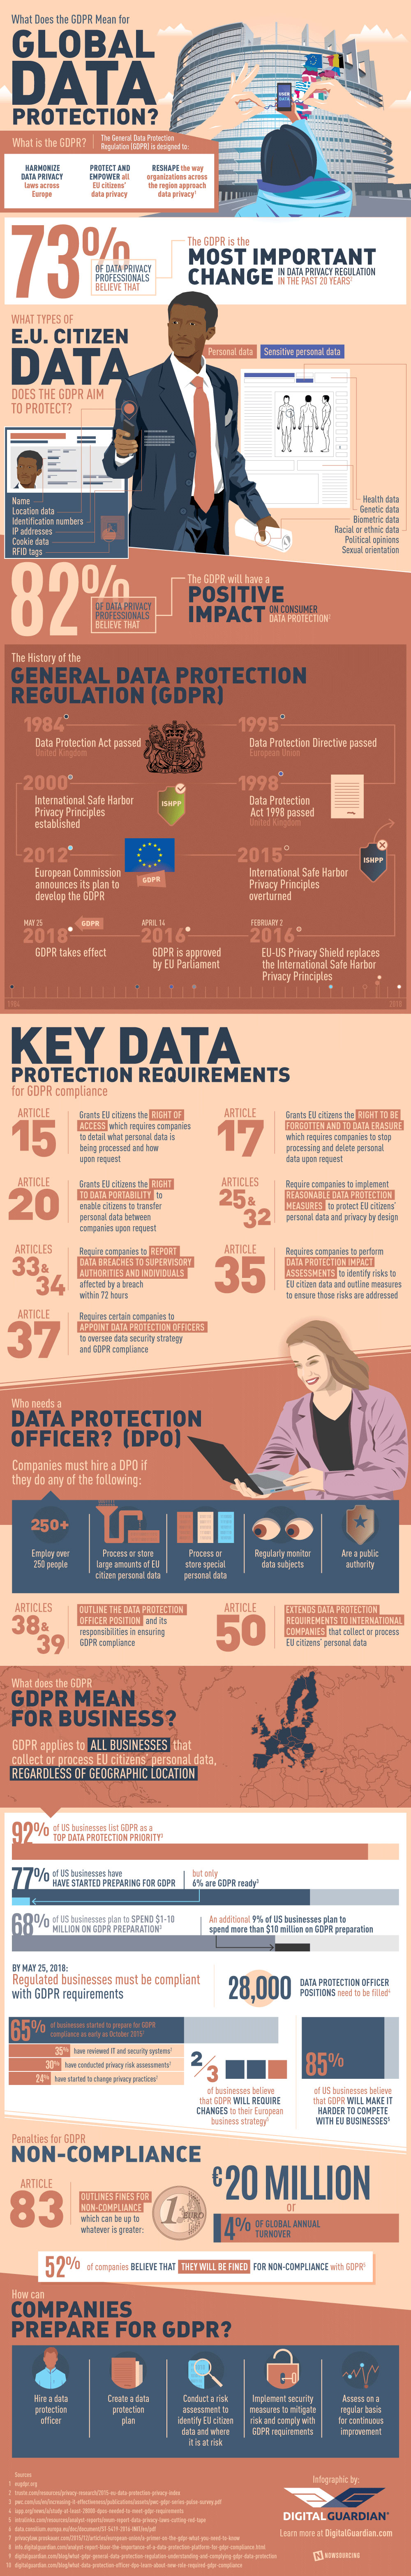 What Does the GDPR Mean for Global Data Protection? [Infographic]